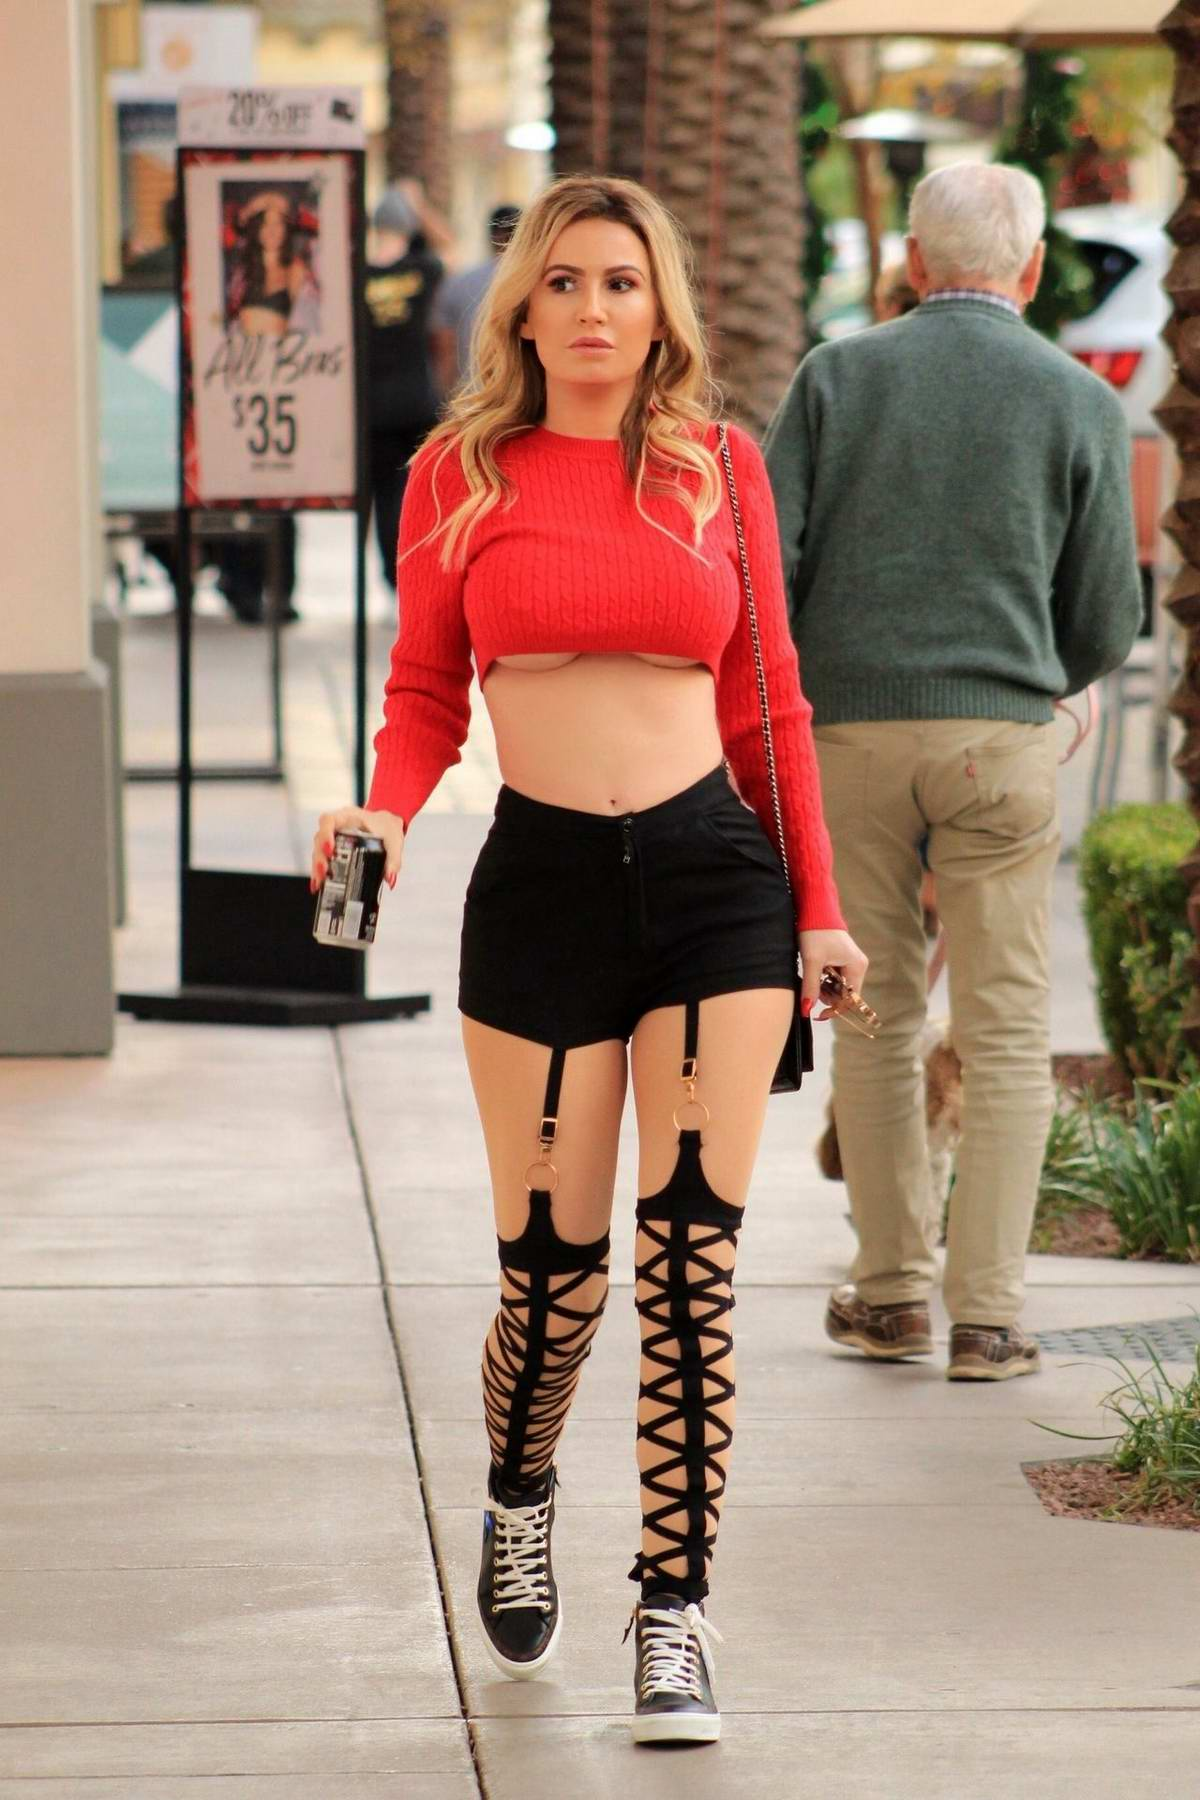 Ana Braga wore a red cropped top and black shorts during a shopping trip to a Victoria's Secret store in Los Angeles